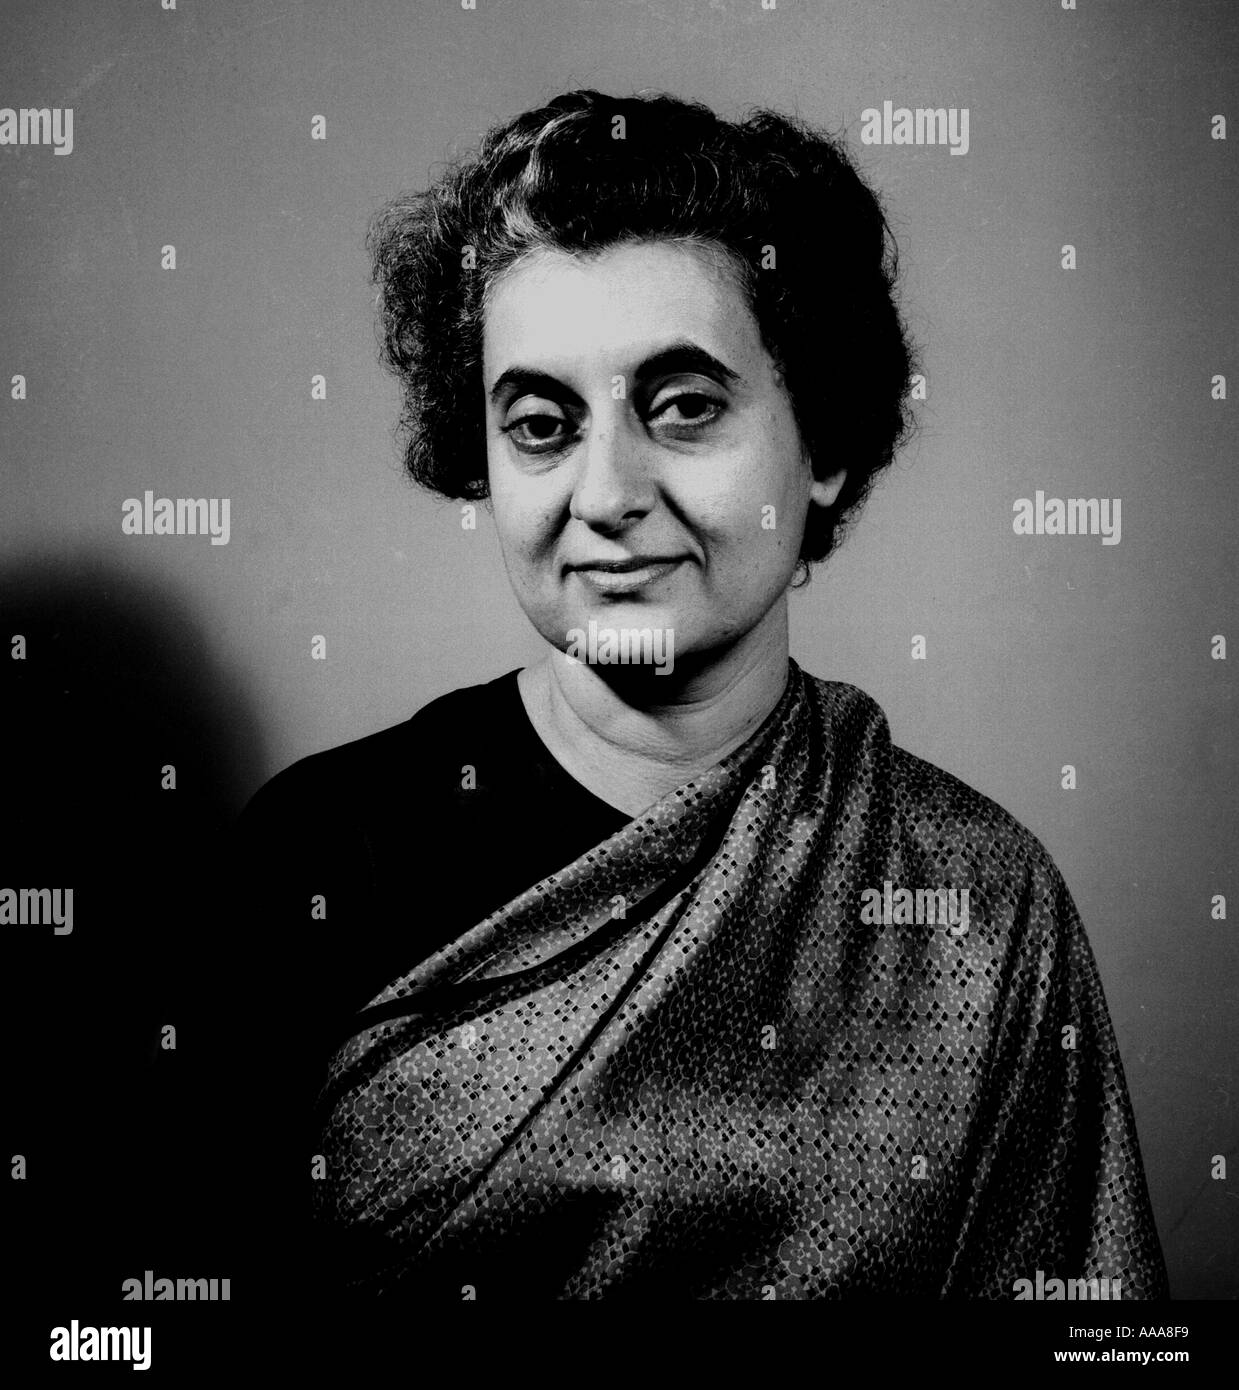 indira gandhi my ideal A fallout of the emergency era was the supreme court laid down that, although the constitution is amenable to amendments (as abused by indira gandhi), changes that tinker with its basic structure cannot be made by the parliament.